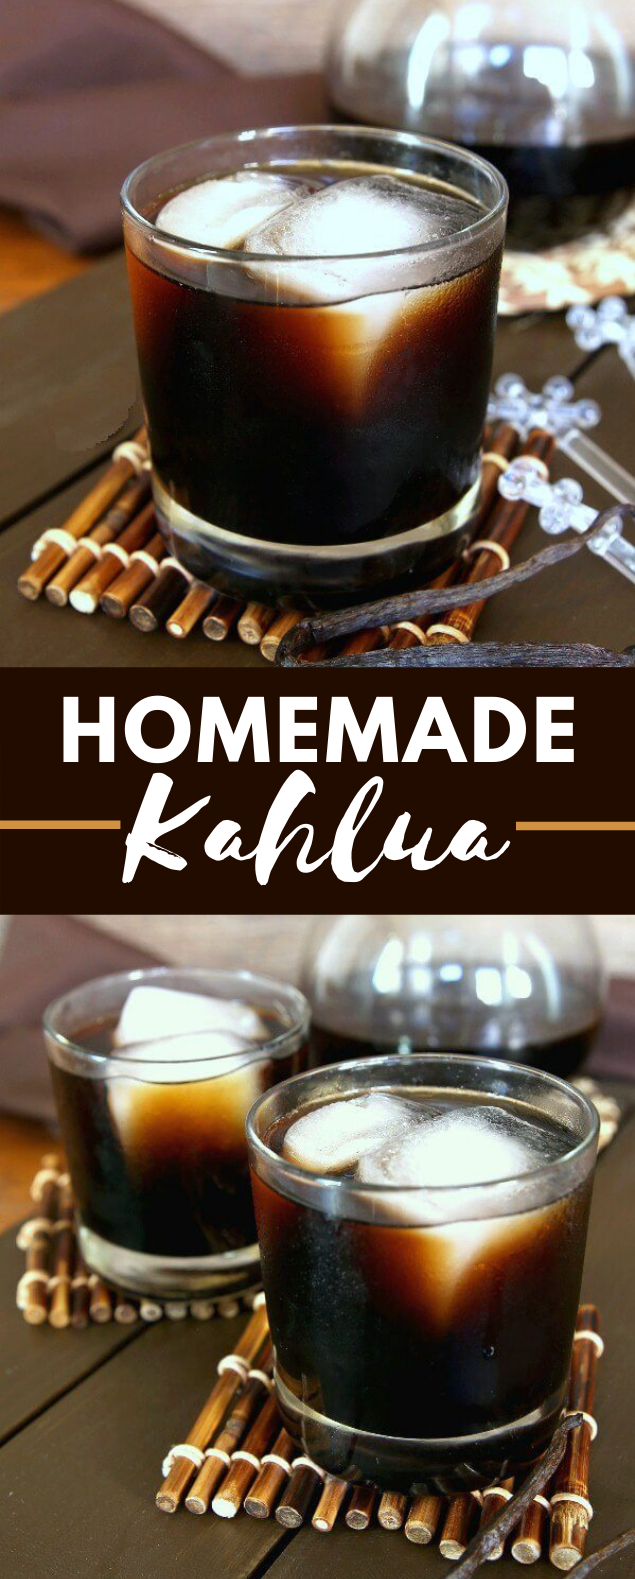 HOMEMADE KAHLUA #drinks #cocktails #homemade #easyrecipe #espresso